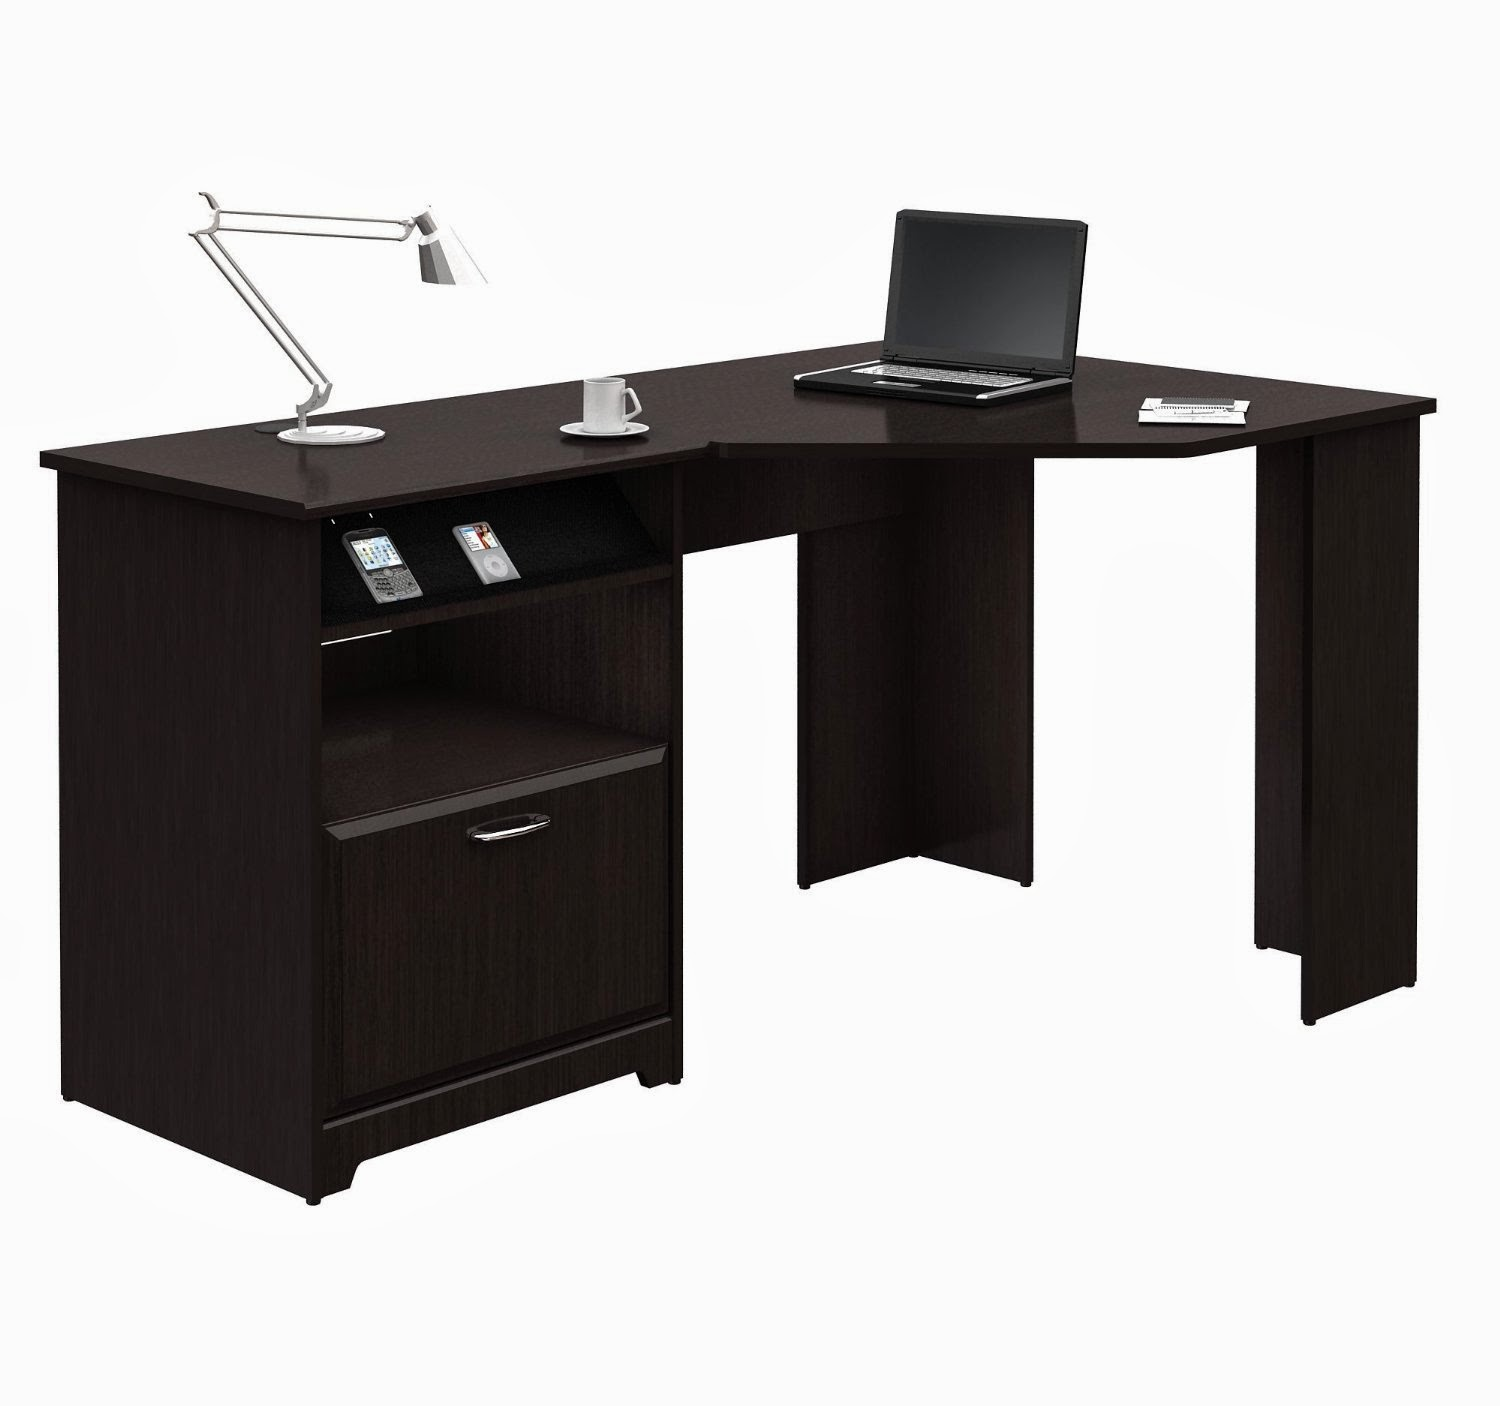 Where To Buy Cheap Desks: Cheap Desks For Sale